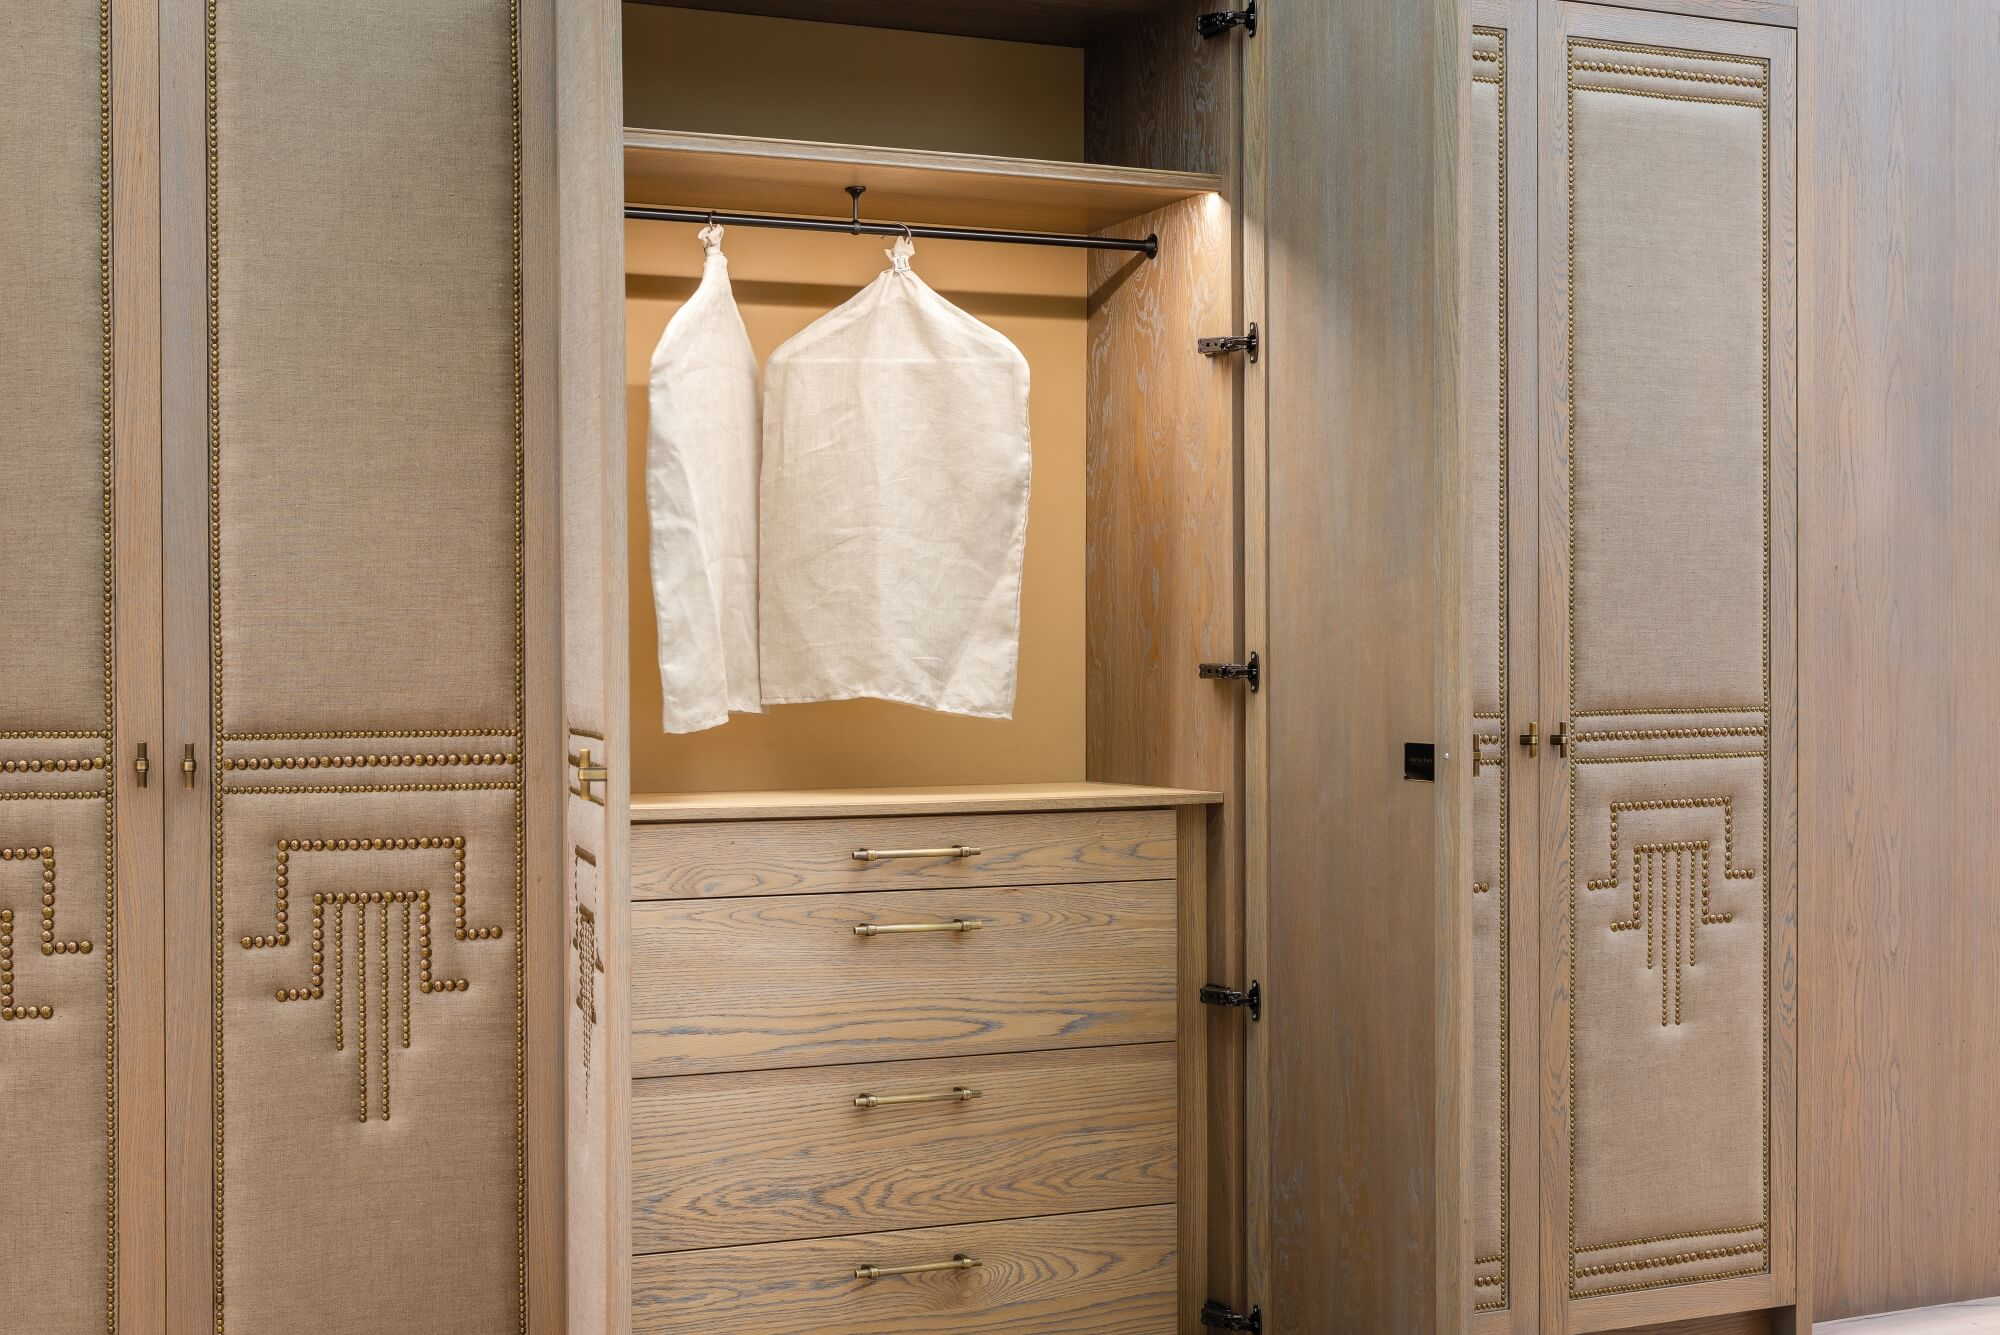 Luxurious bedroom with wood paneling and built in closets on the walls.